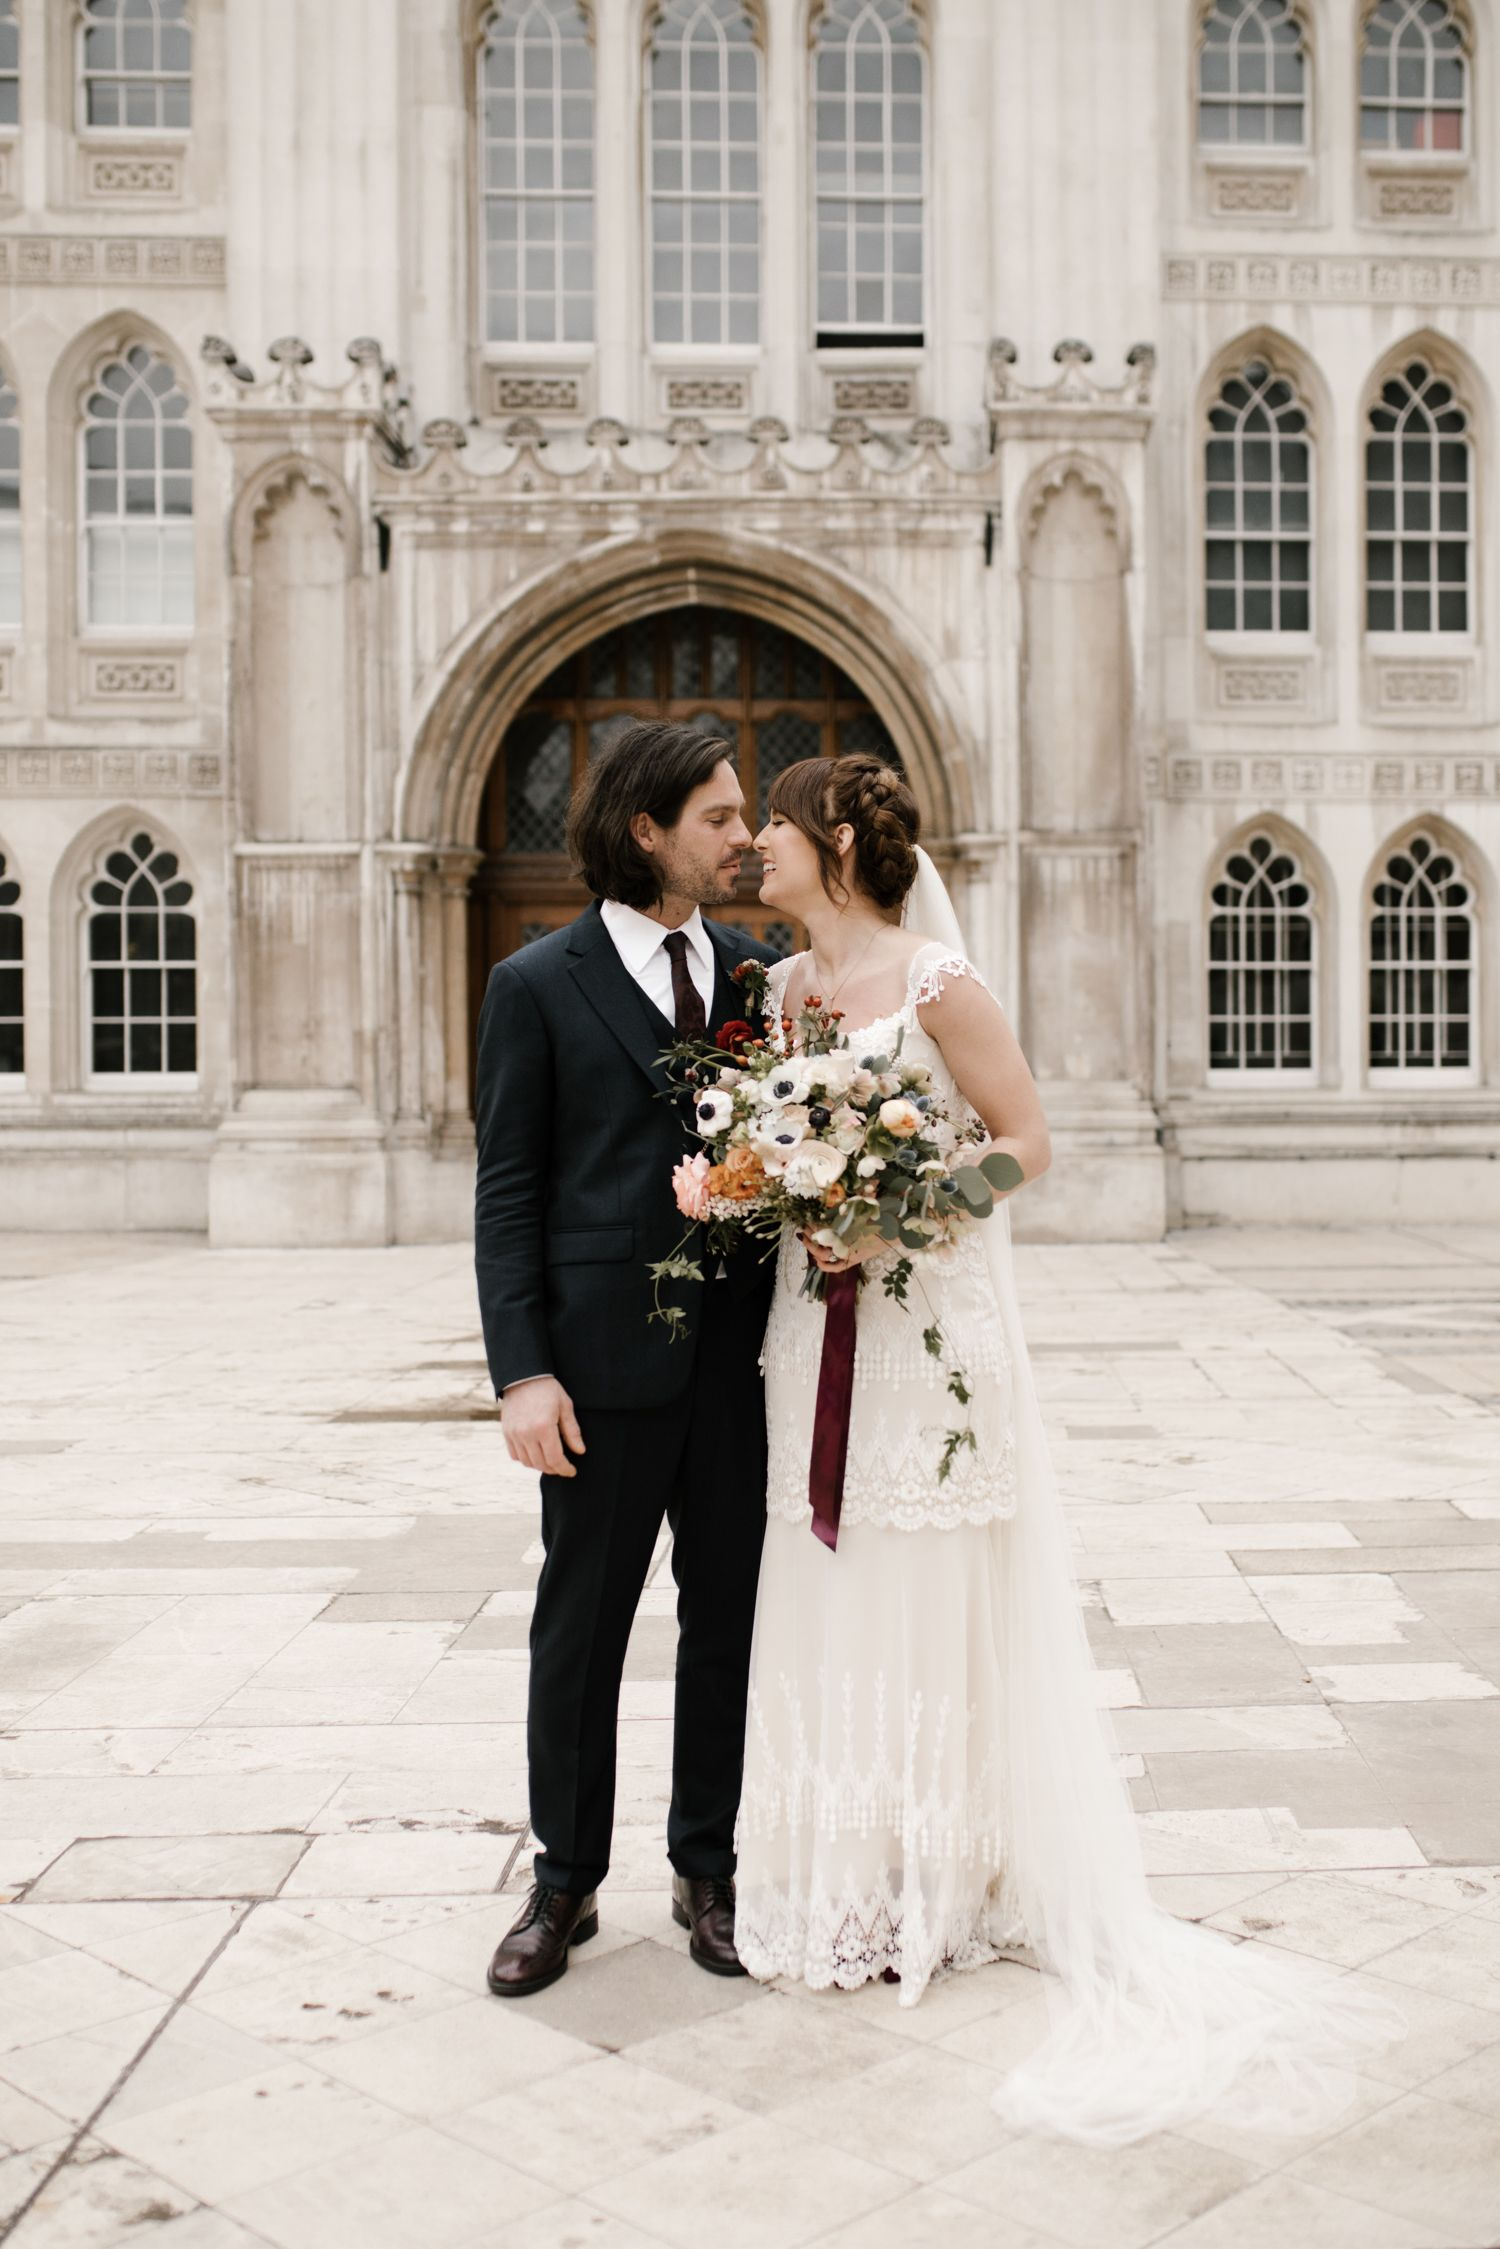 Couture wedding dresses london  The Ned  Hawksmoor Wedding  W e d d i n g P h o t o g r a p h y